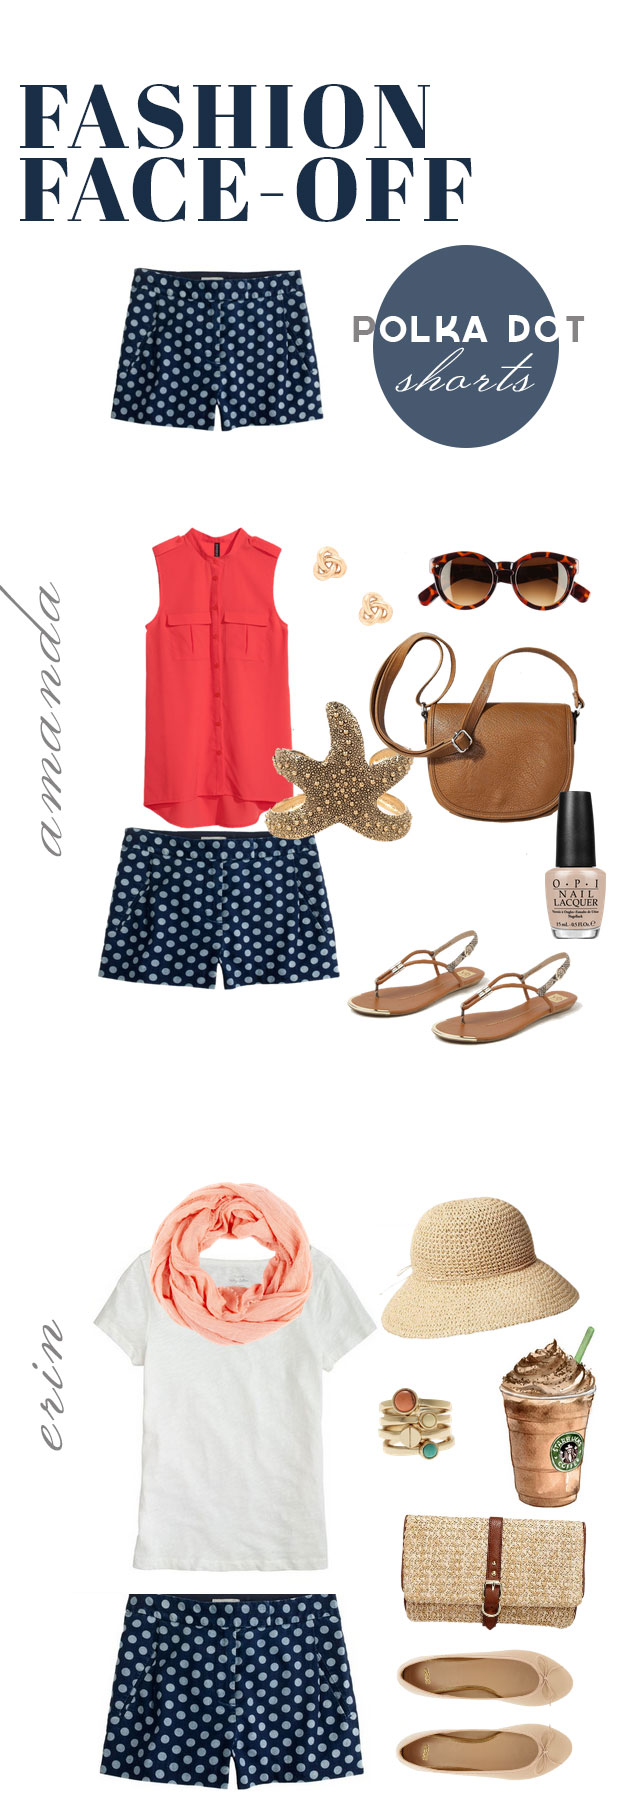 Polka dot shorts, styled two ways